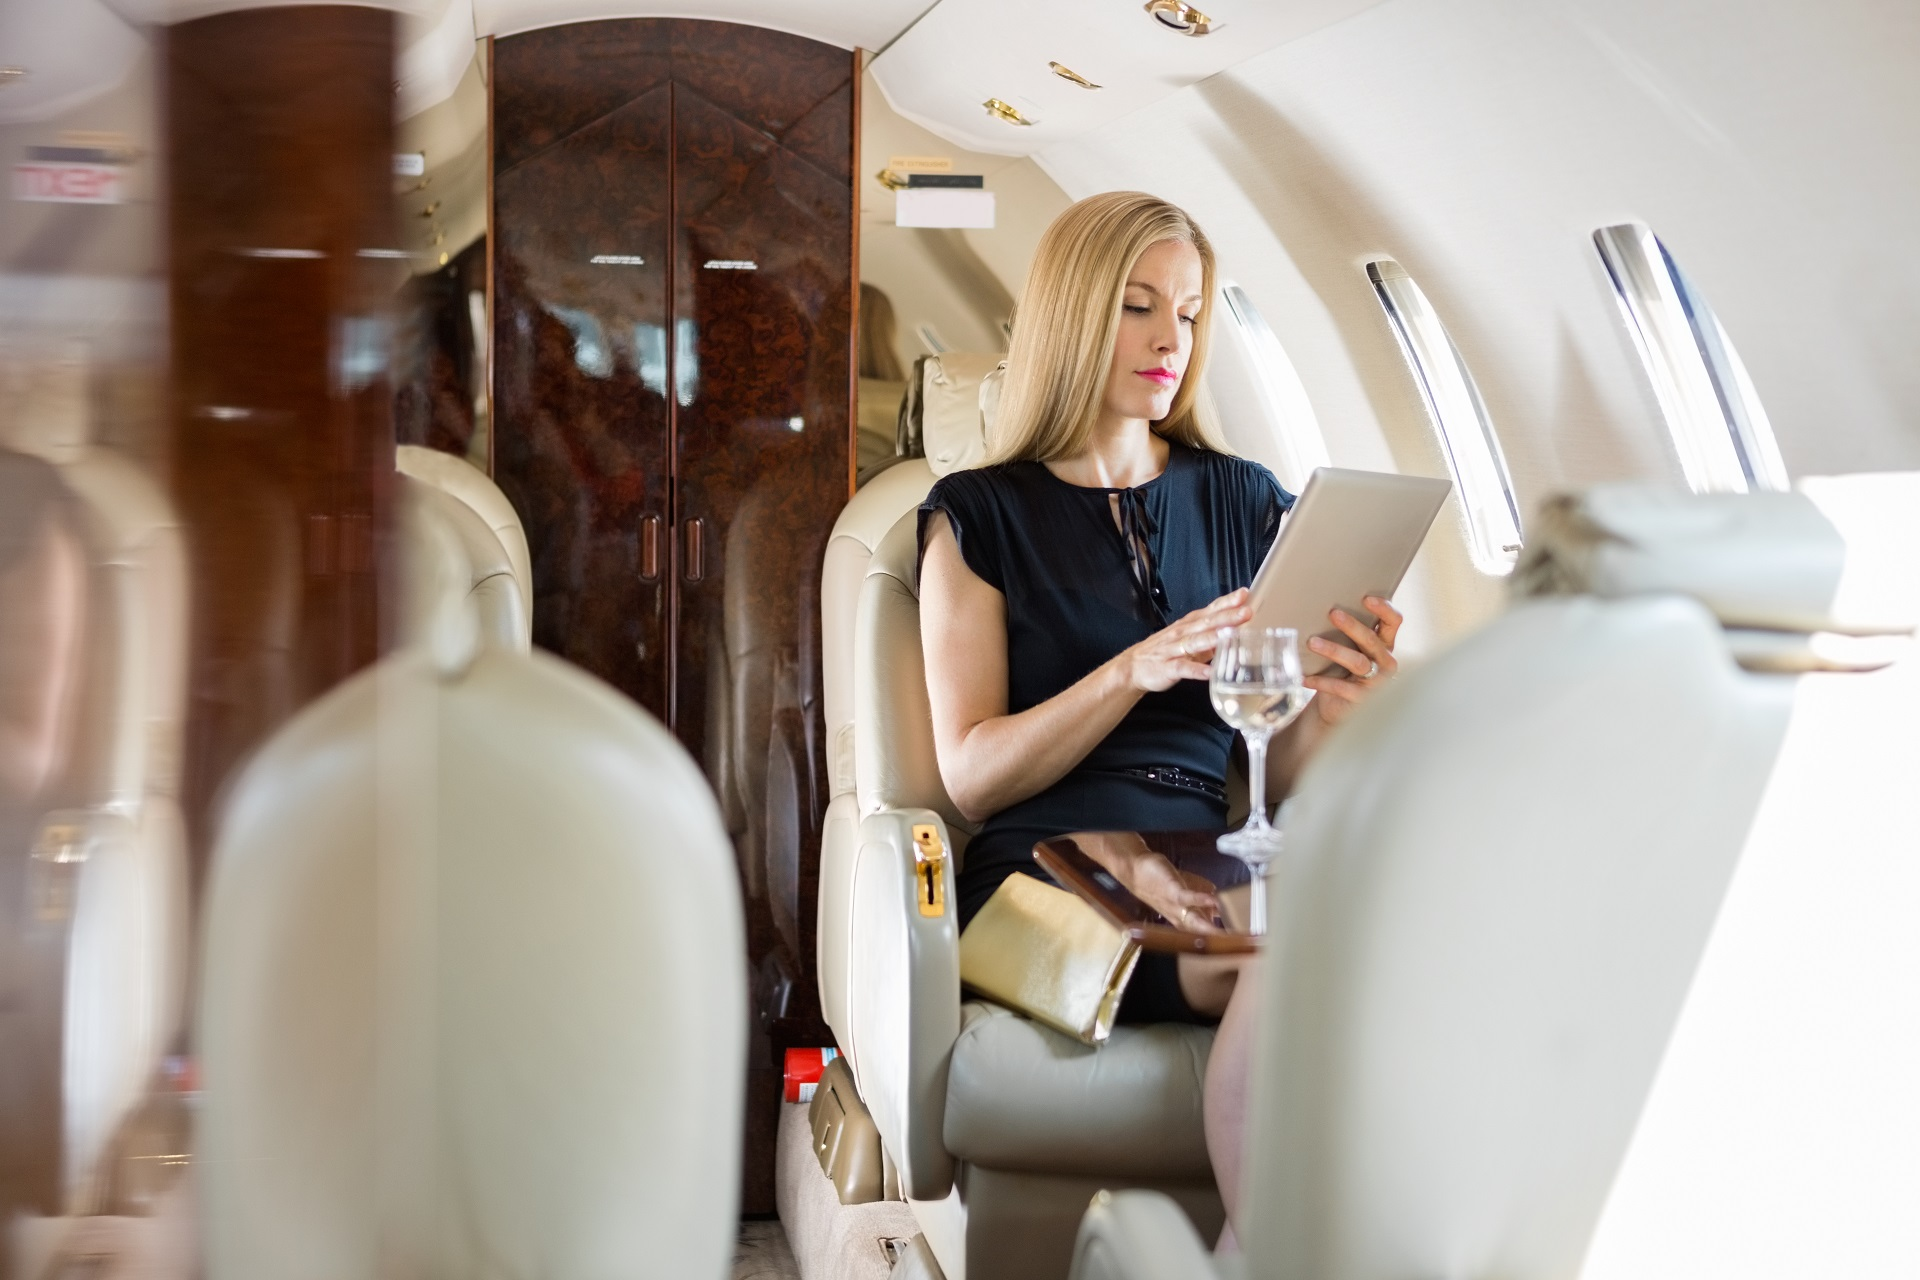 Privat jet woman shutterstock_167757638